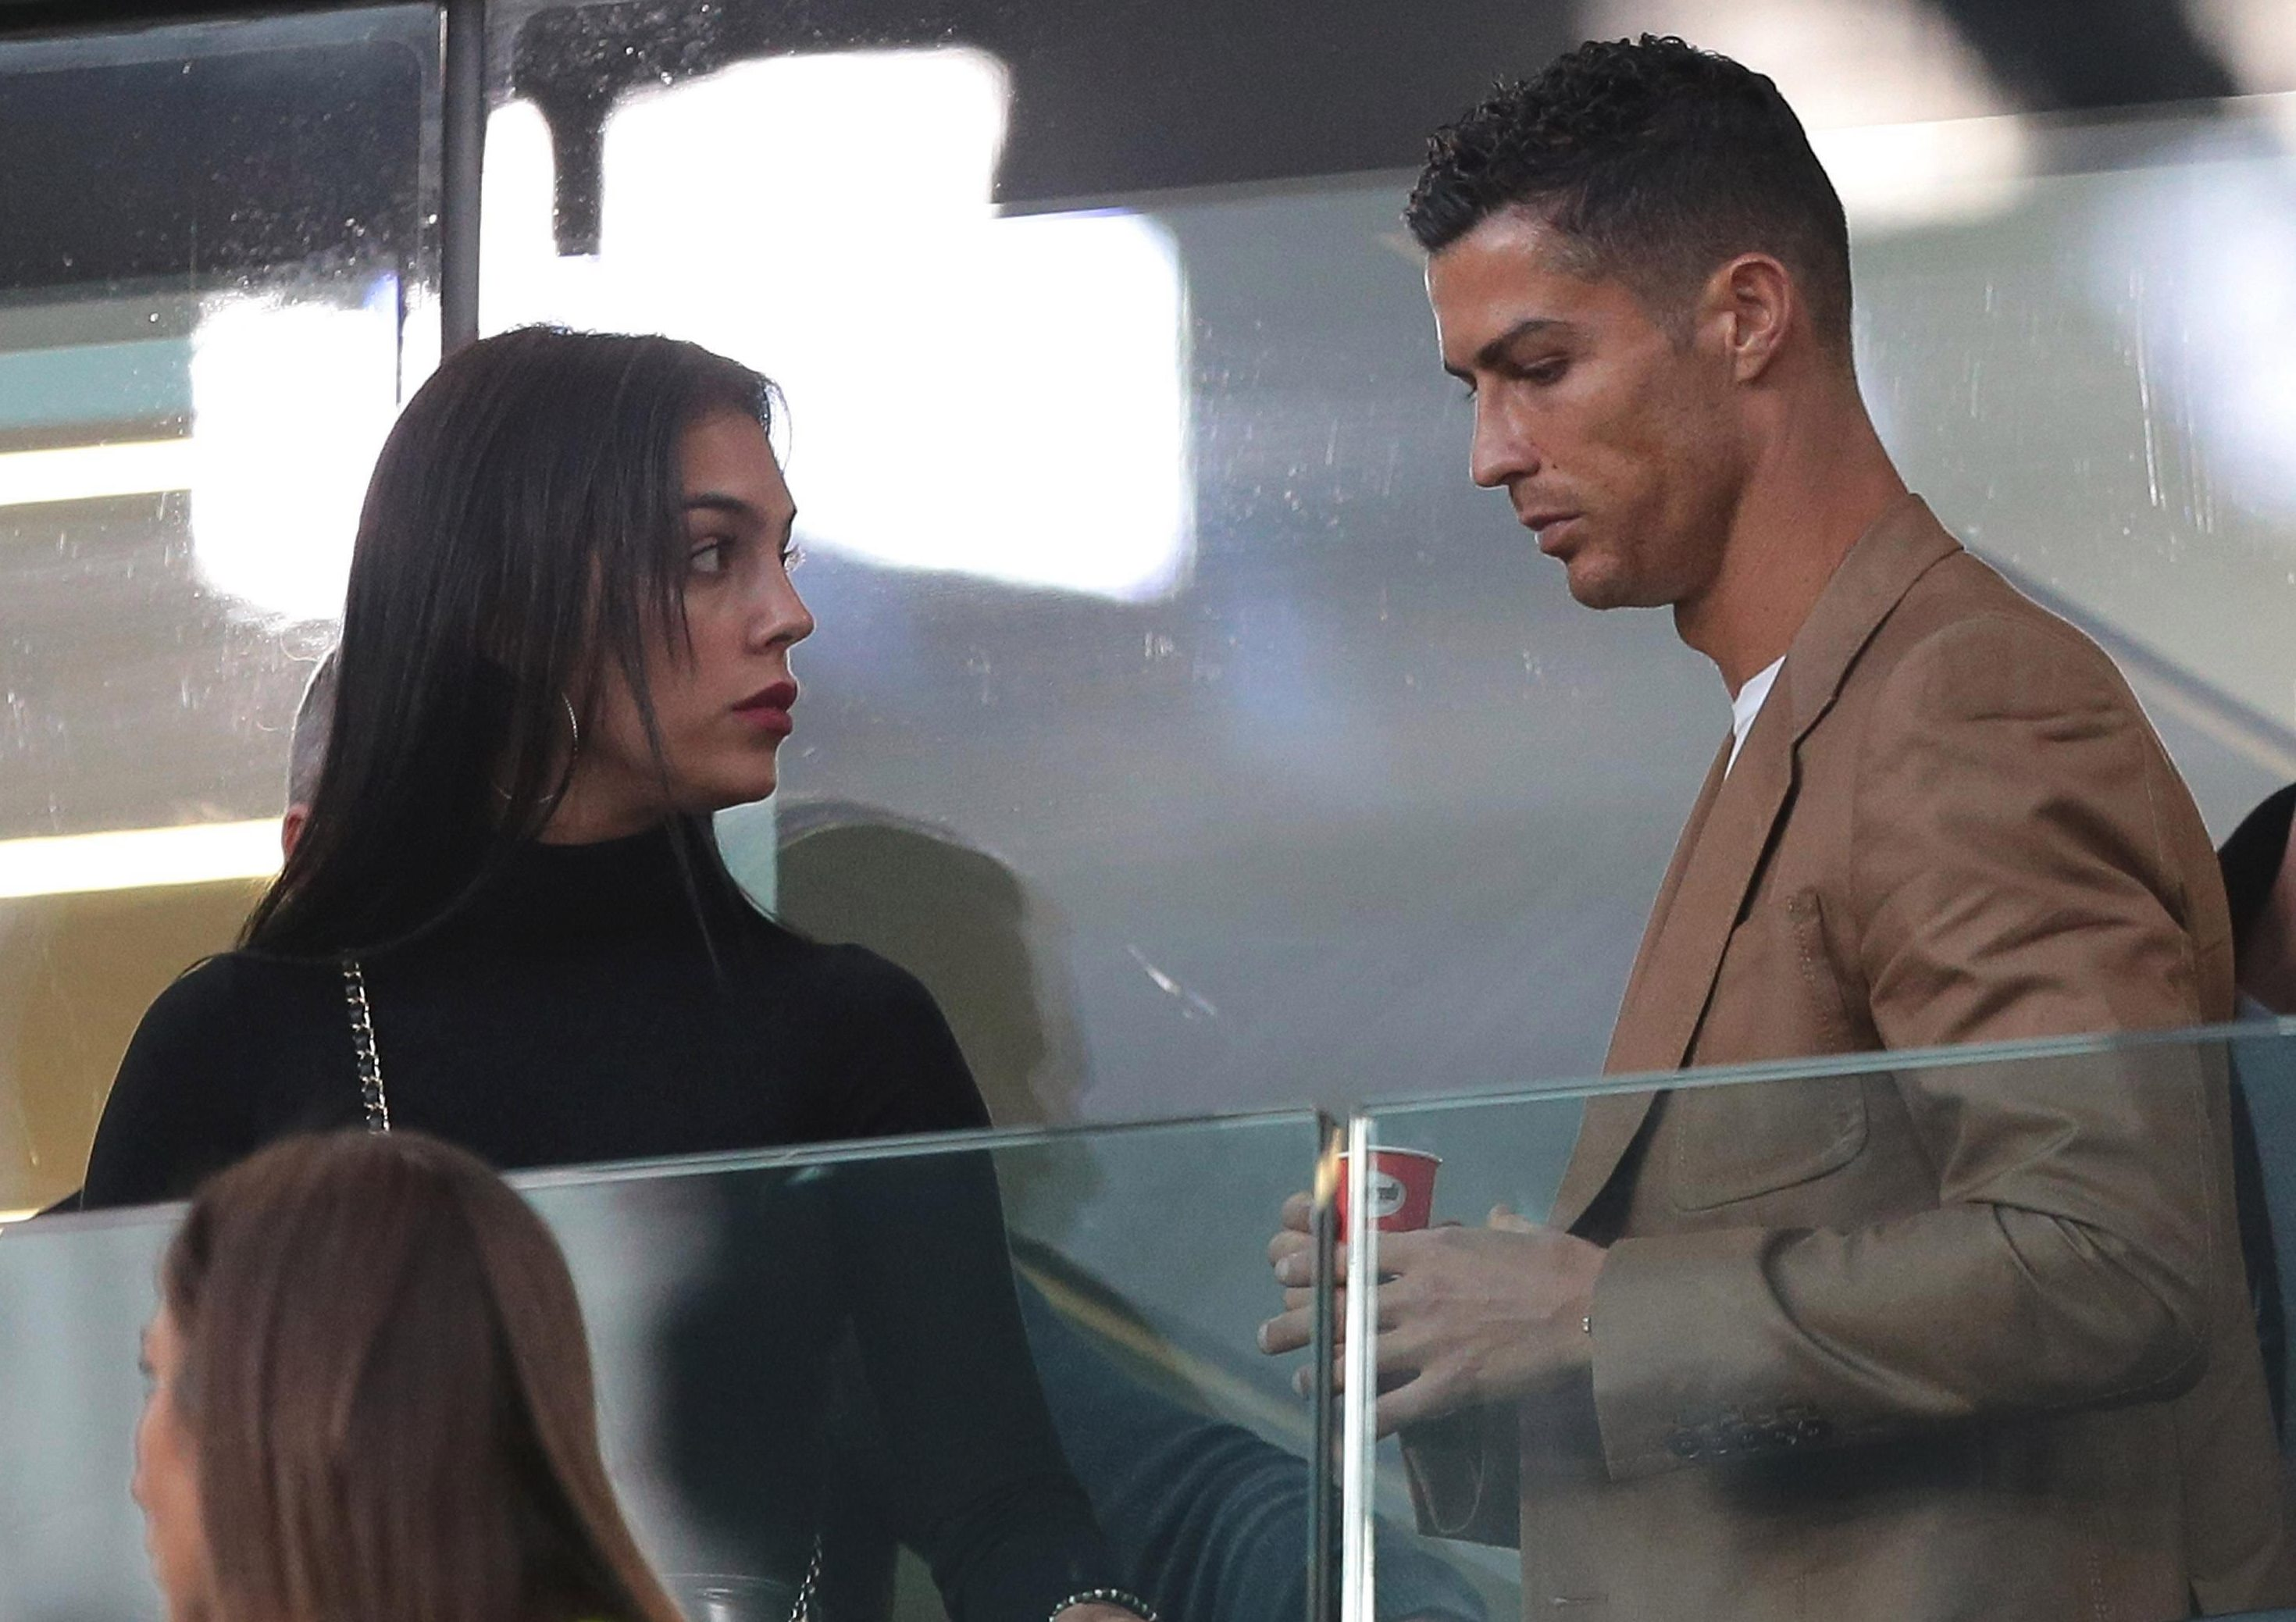 Cristiano Ronaldo and Georgina Rodriguez are seen during the Group H match of the UEFA Champions League